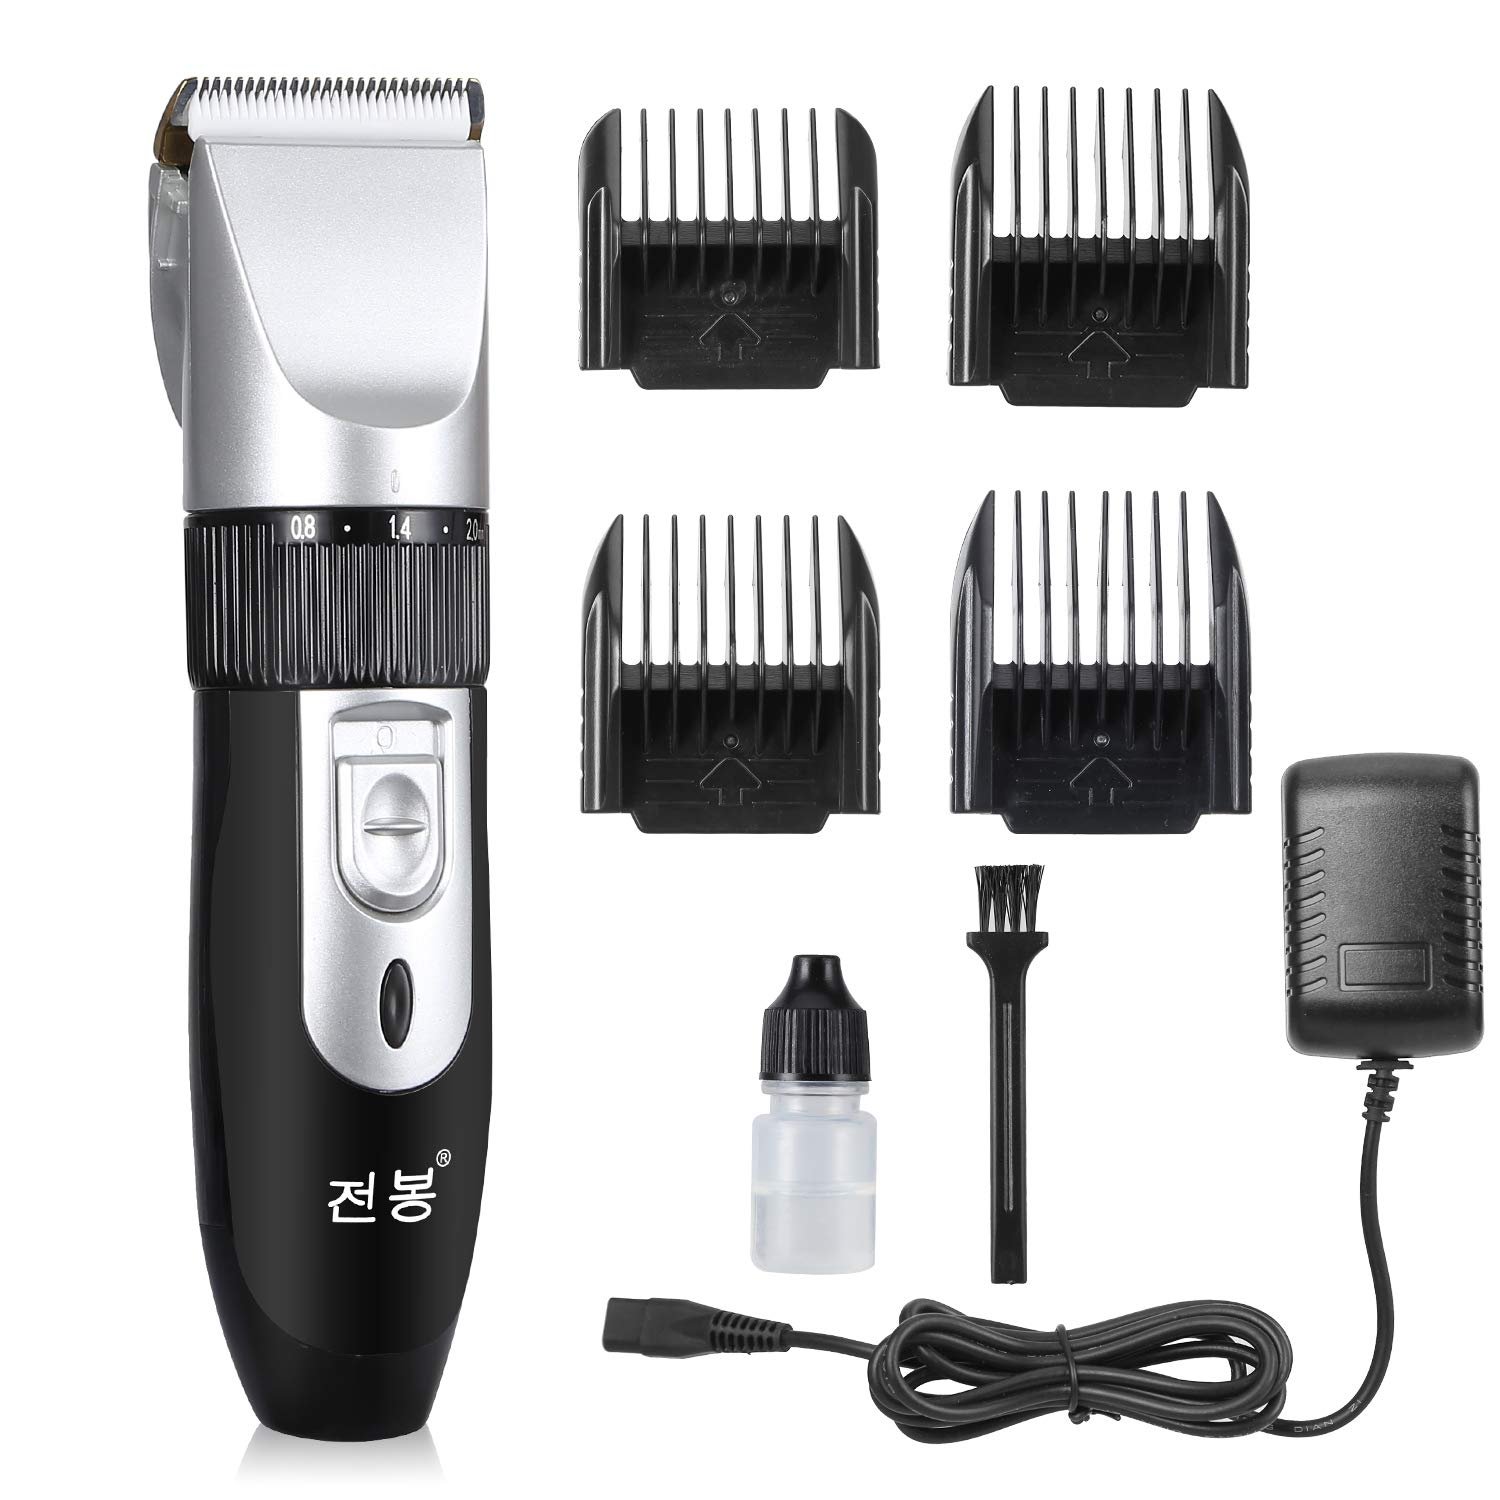 Eterbiz Cordless Hair Clippers, 8 in 1 Titanium Ceramic Blade Hair Cutting Kit Machine Rechargeable, Professional Beard Trimmer for men, Low Noise Hair Trimmer with 4 Limited Comb